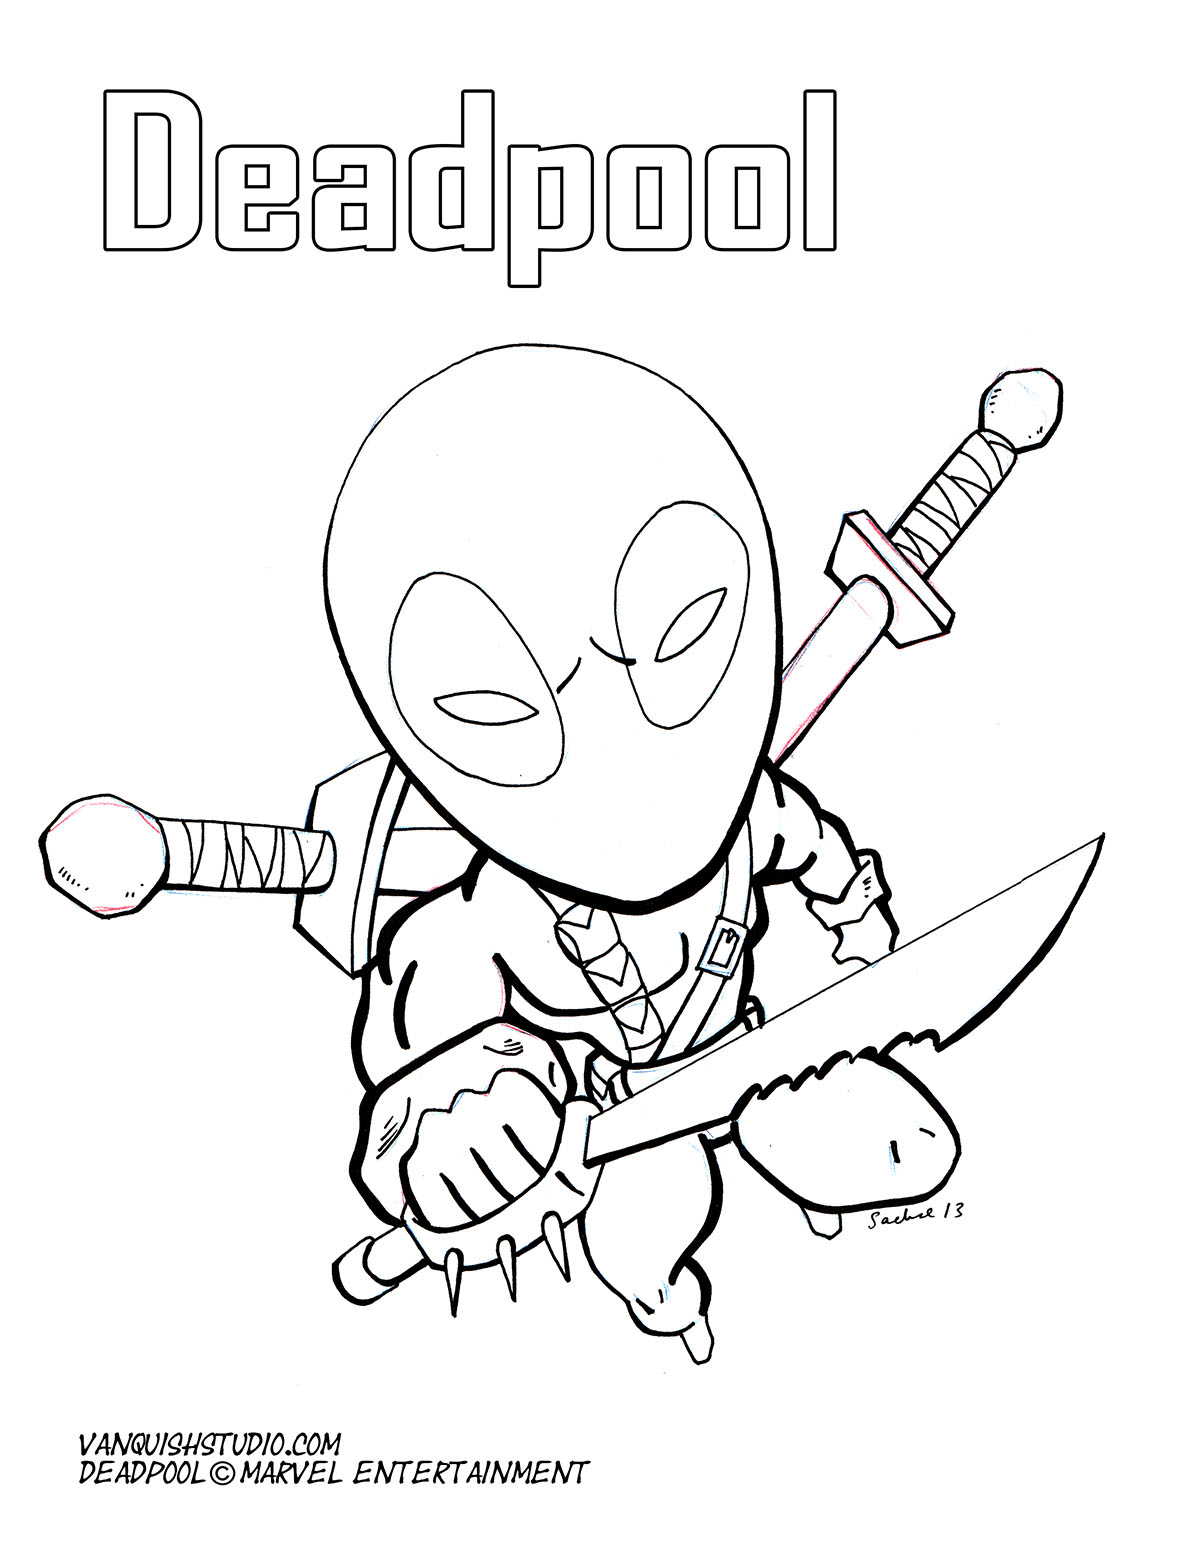 deadpool coloring book pages - new coloring pages vanquish studio